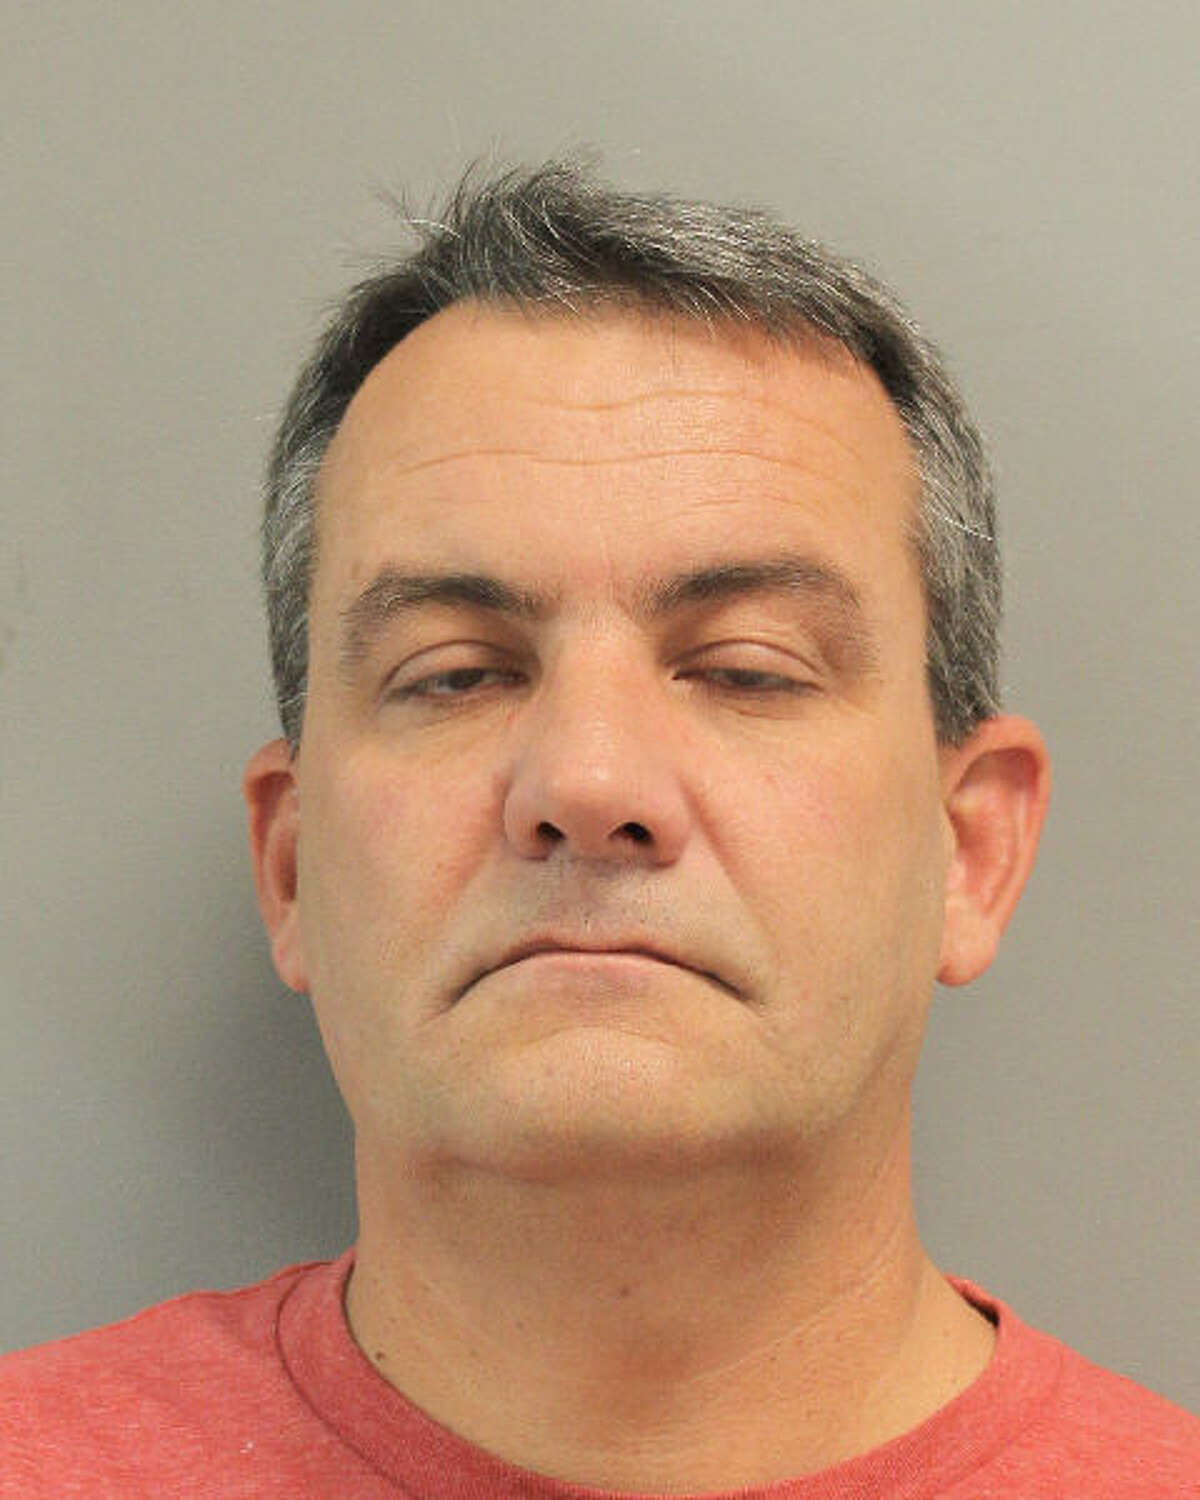 McKay Christensen, 49, faces a third-degree felony charge in the assault of his stepson. He resigned from the police department, where he has worked since 2003 and was most recently assigned to the traffic unit.